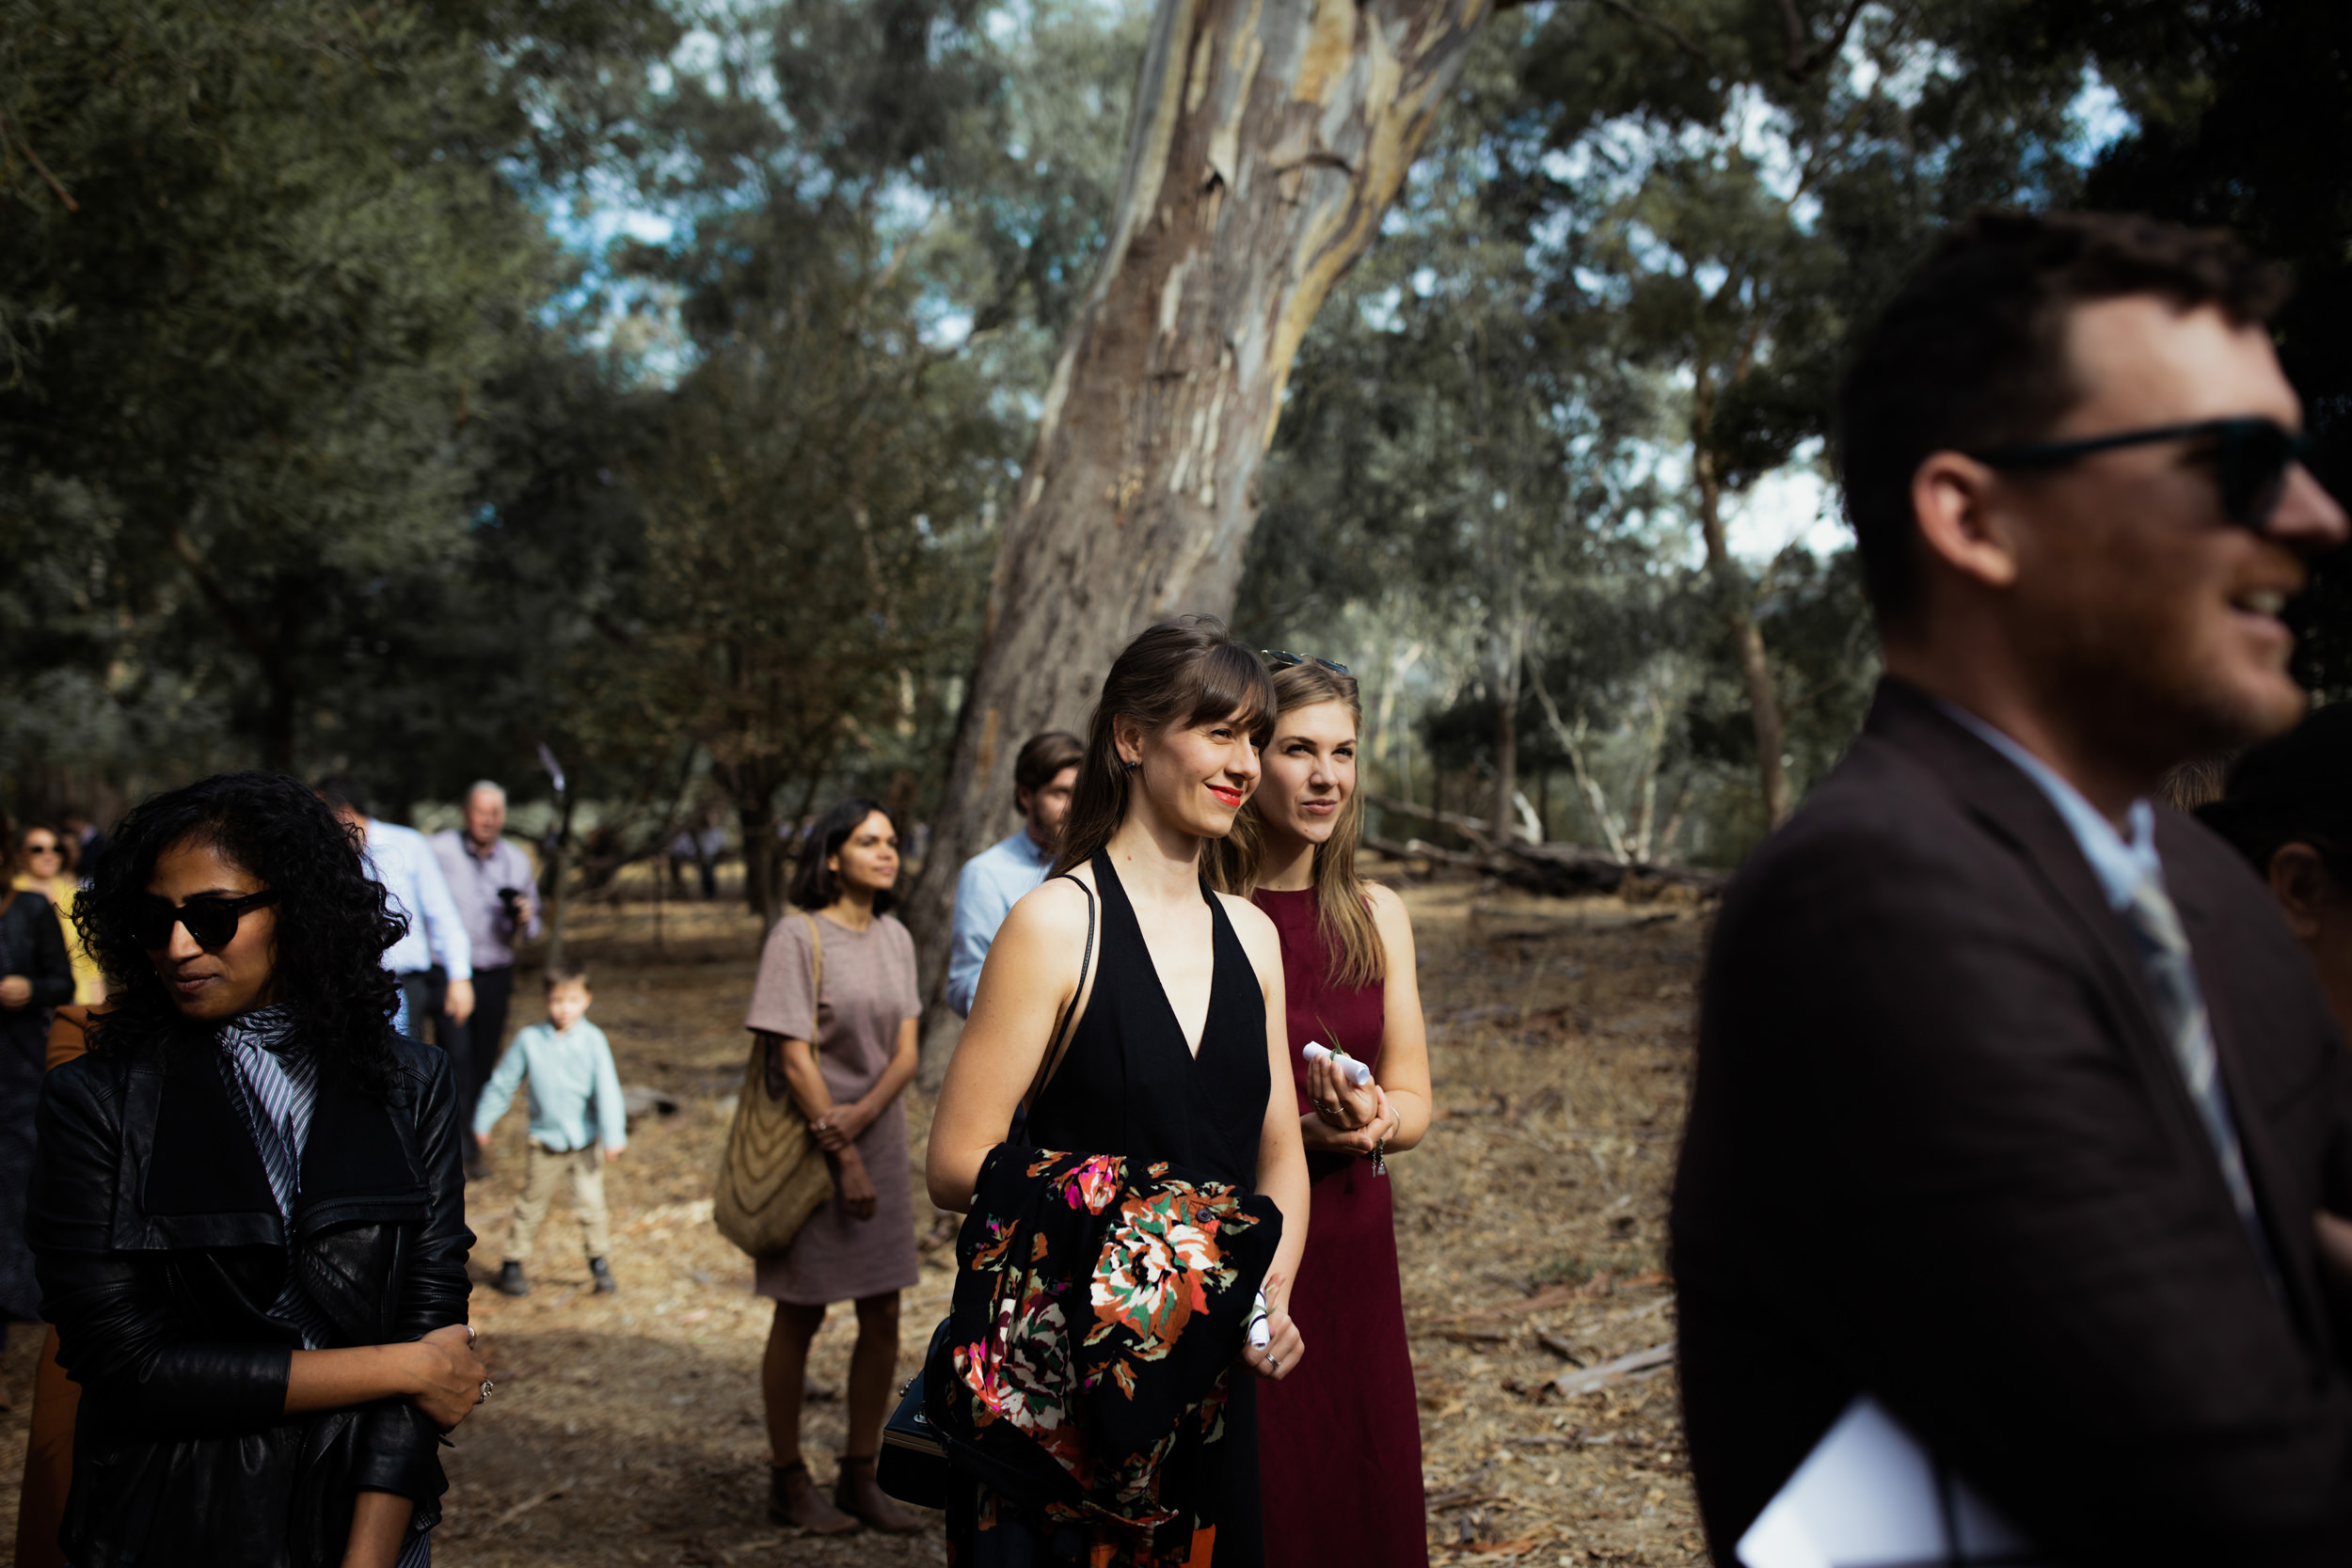 I-Got-You-Babe-Weddings-Claire-Dave-Trawol-VIC-Country-Property-Wedding067.JPG